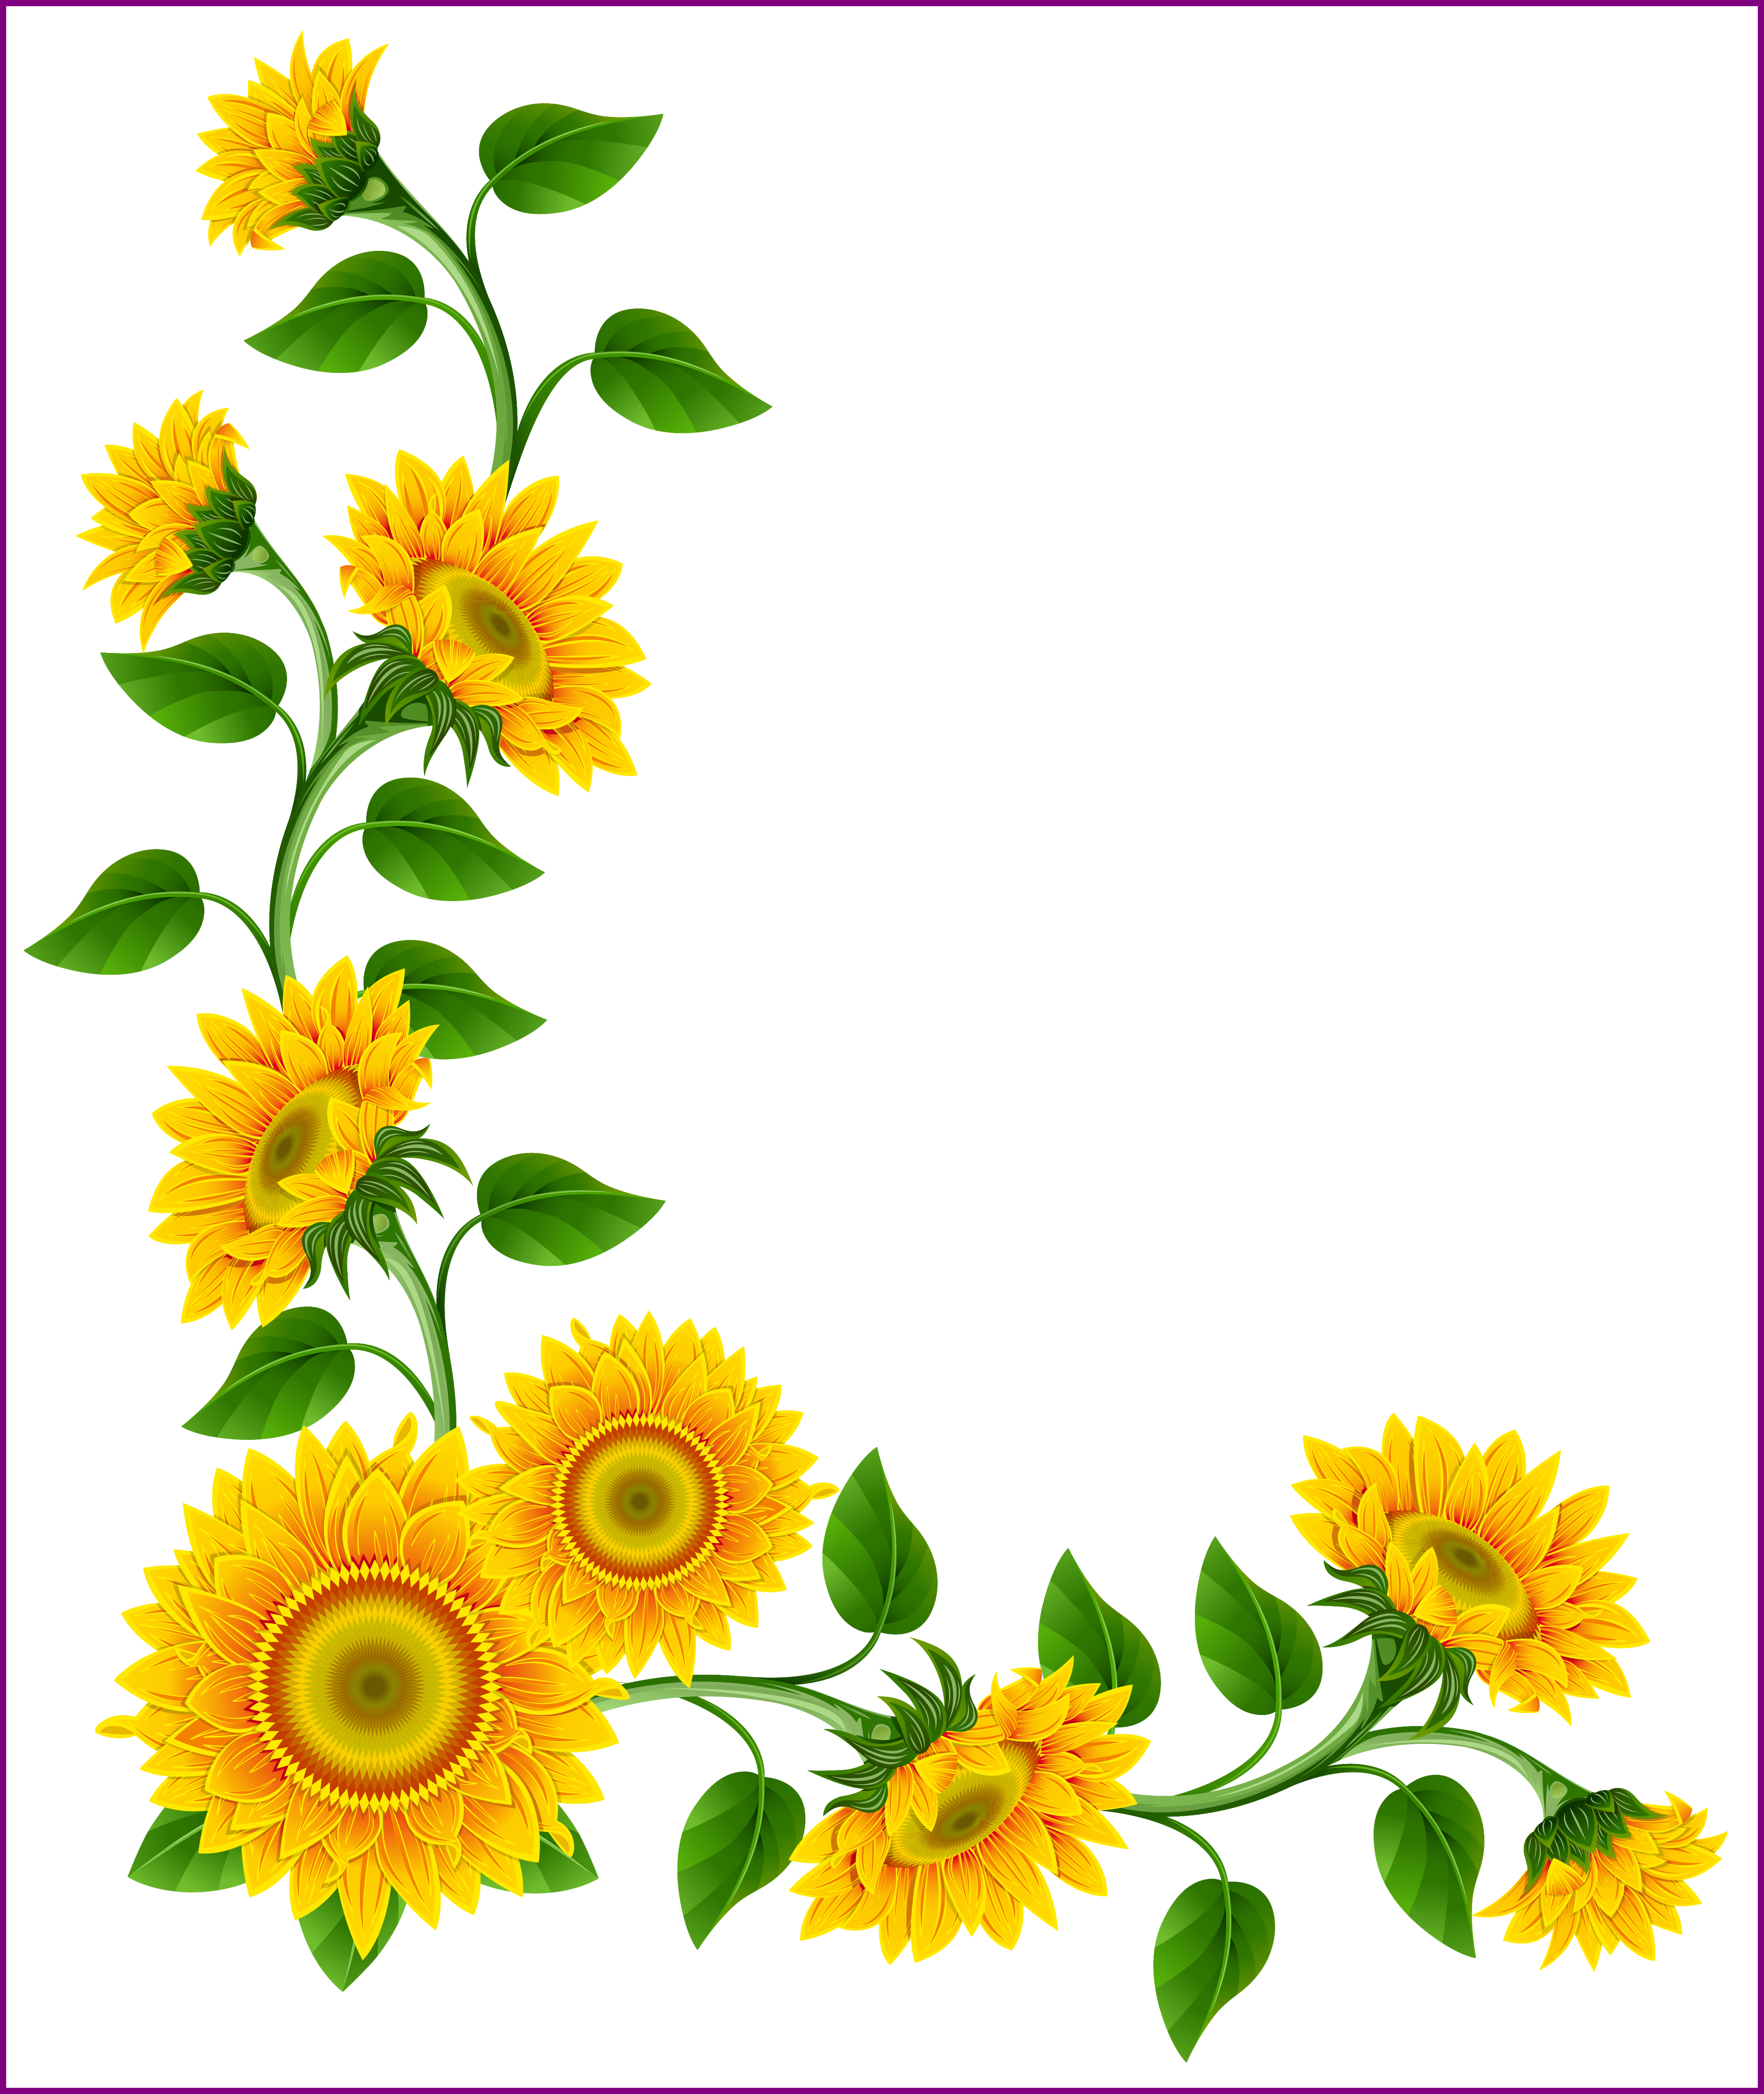 Appealing frames border graphics. Daisies clipart frame